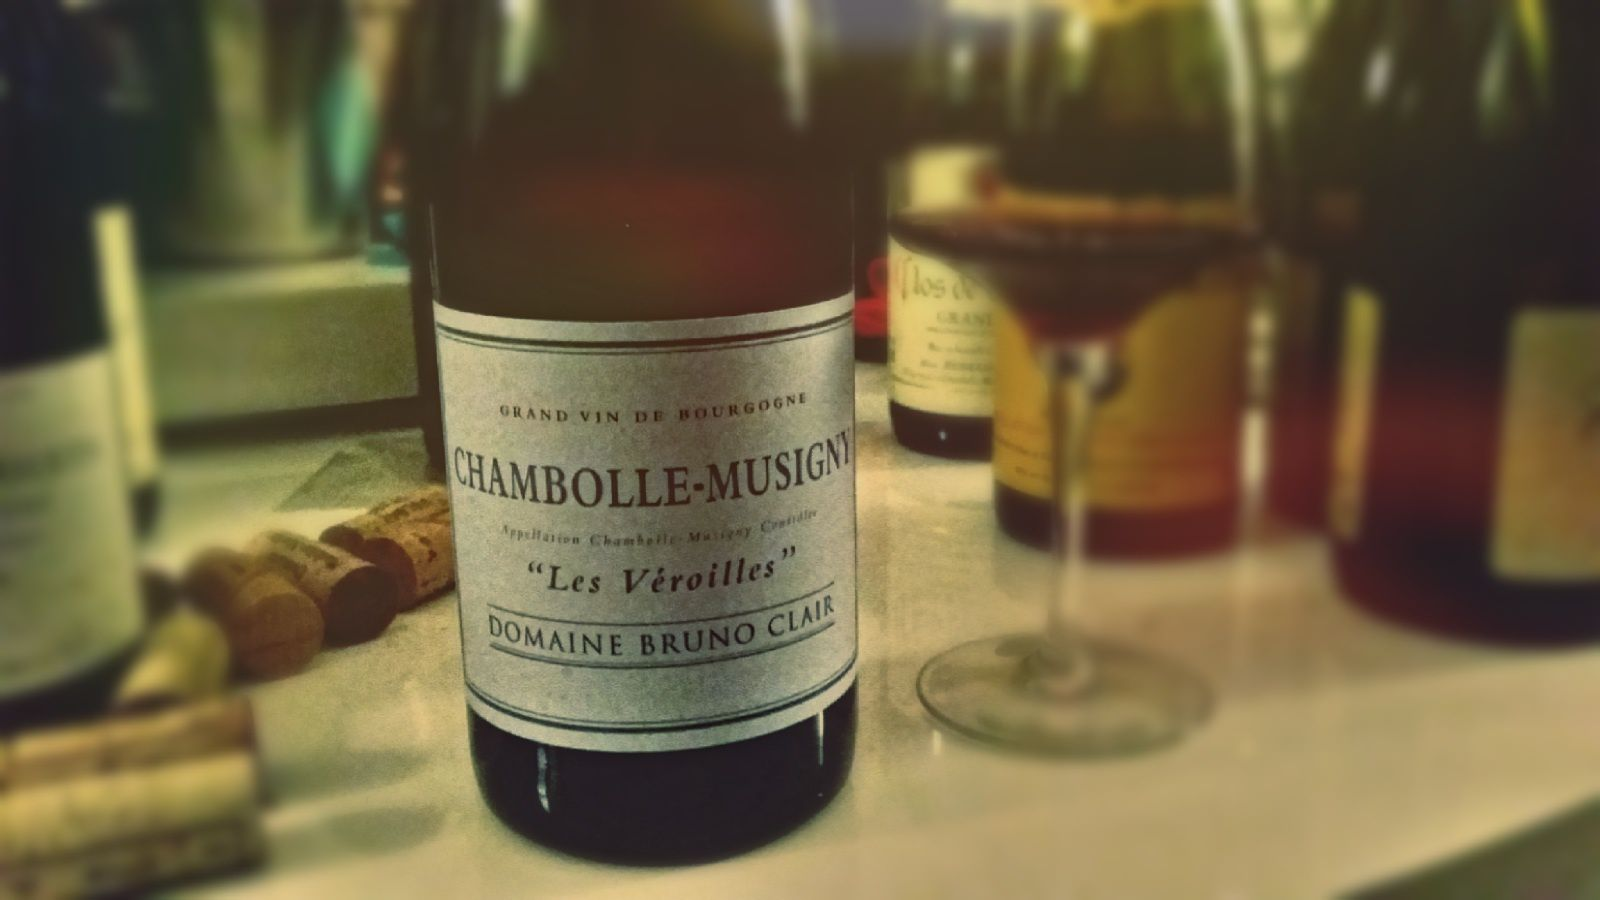 Chambolle Musigny 2013 de Bruno Clair